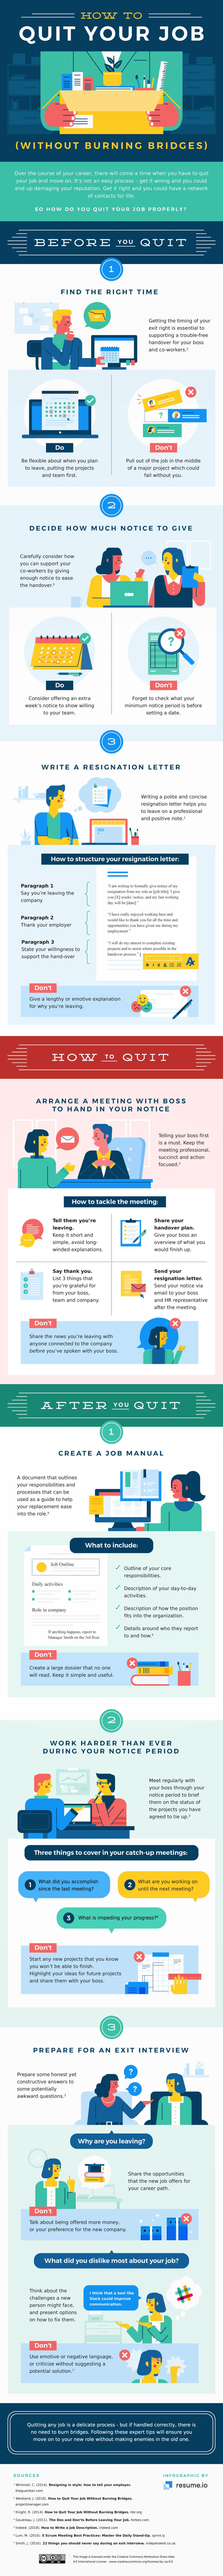 How to Quit Your Job -- Without Burning Bridges (Infographic)